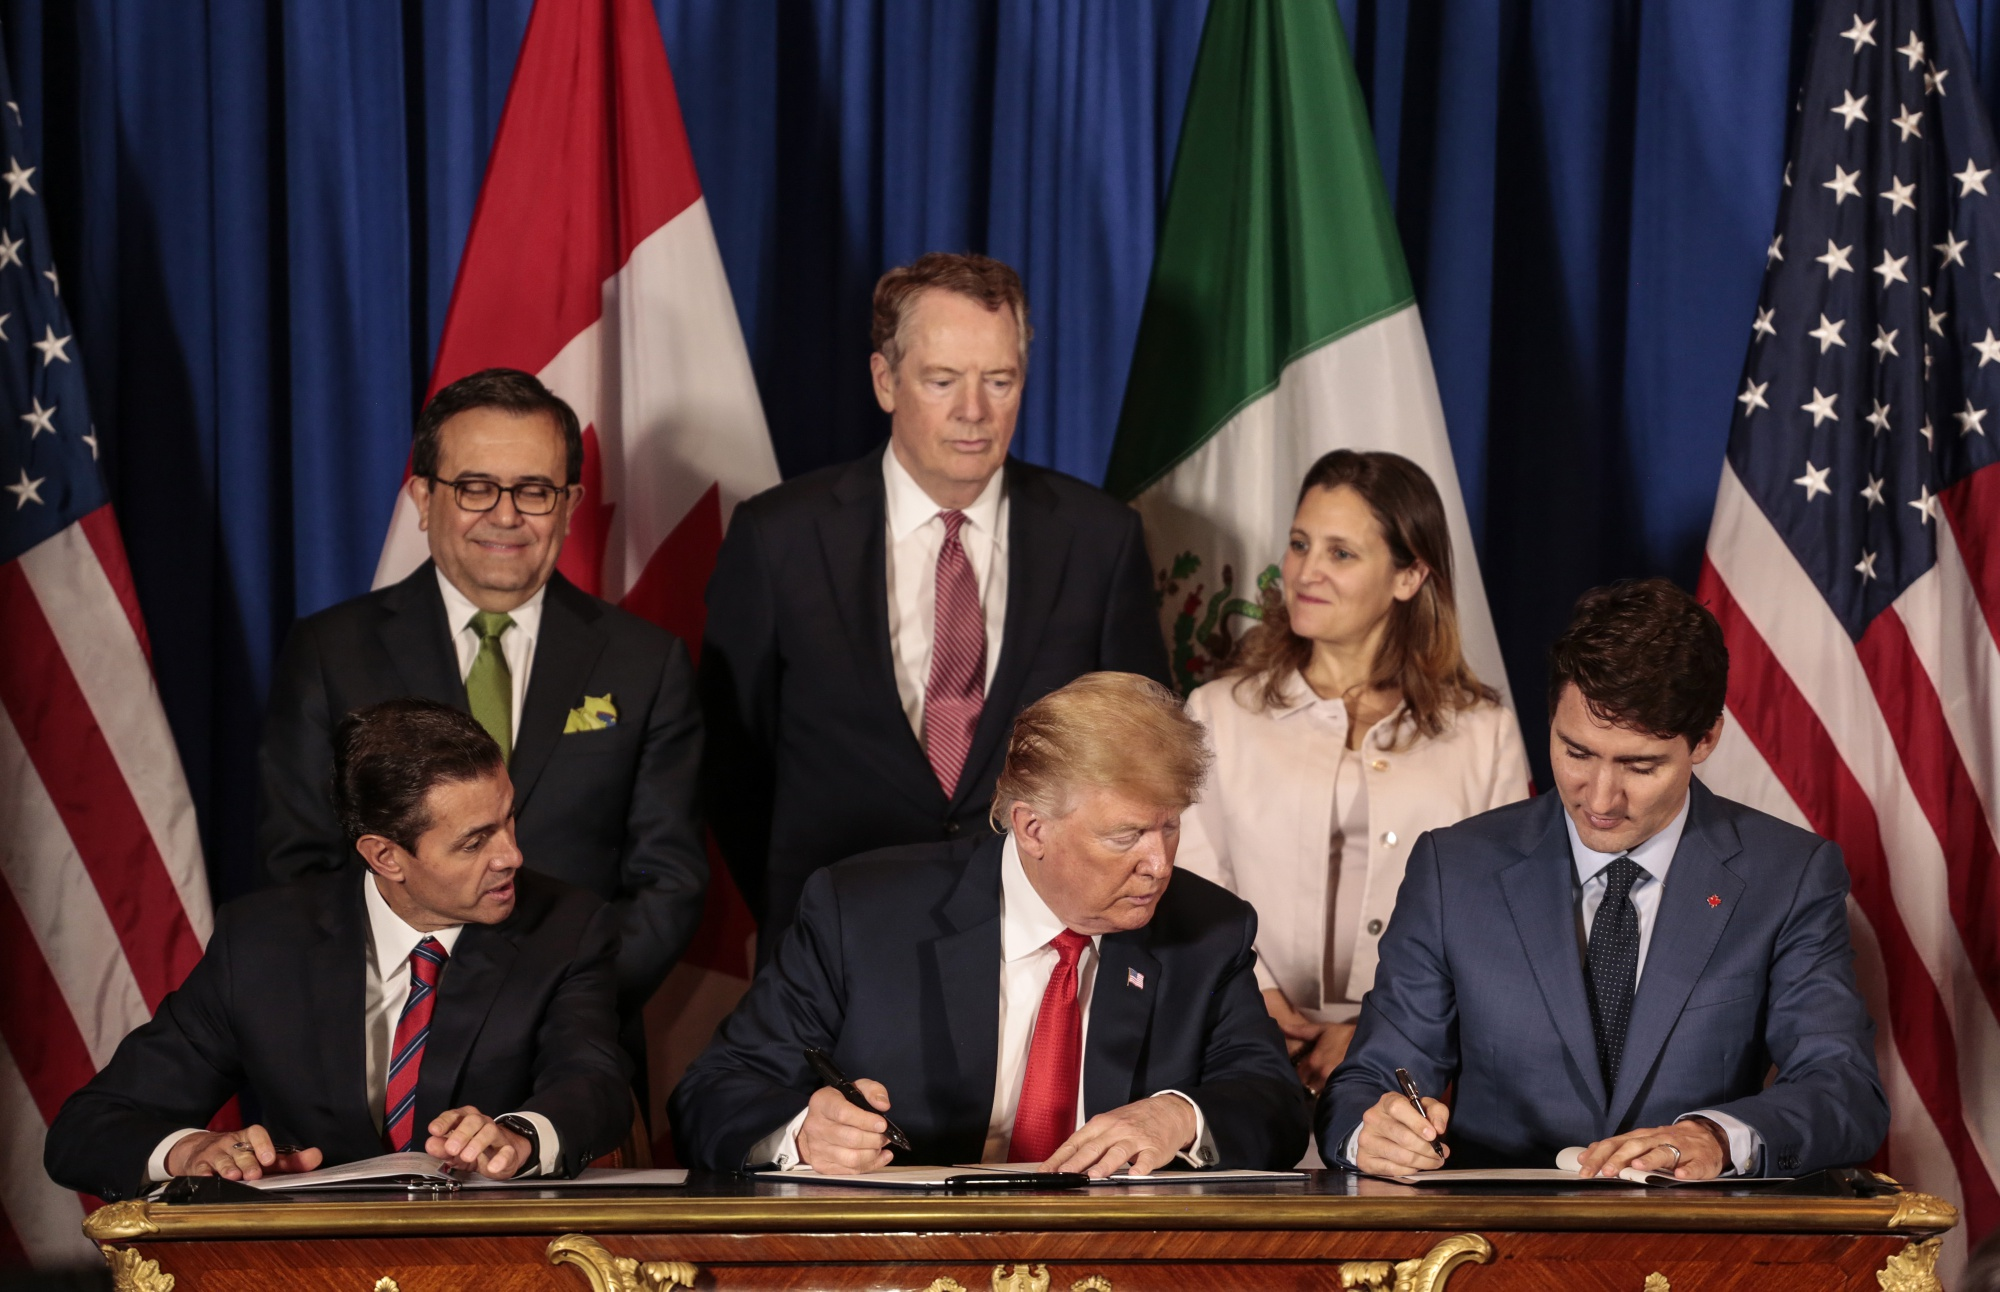 signing of the USMCA trade agreement